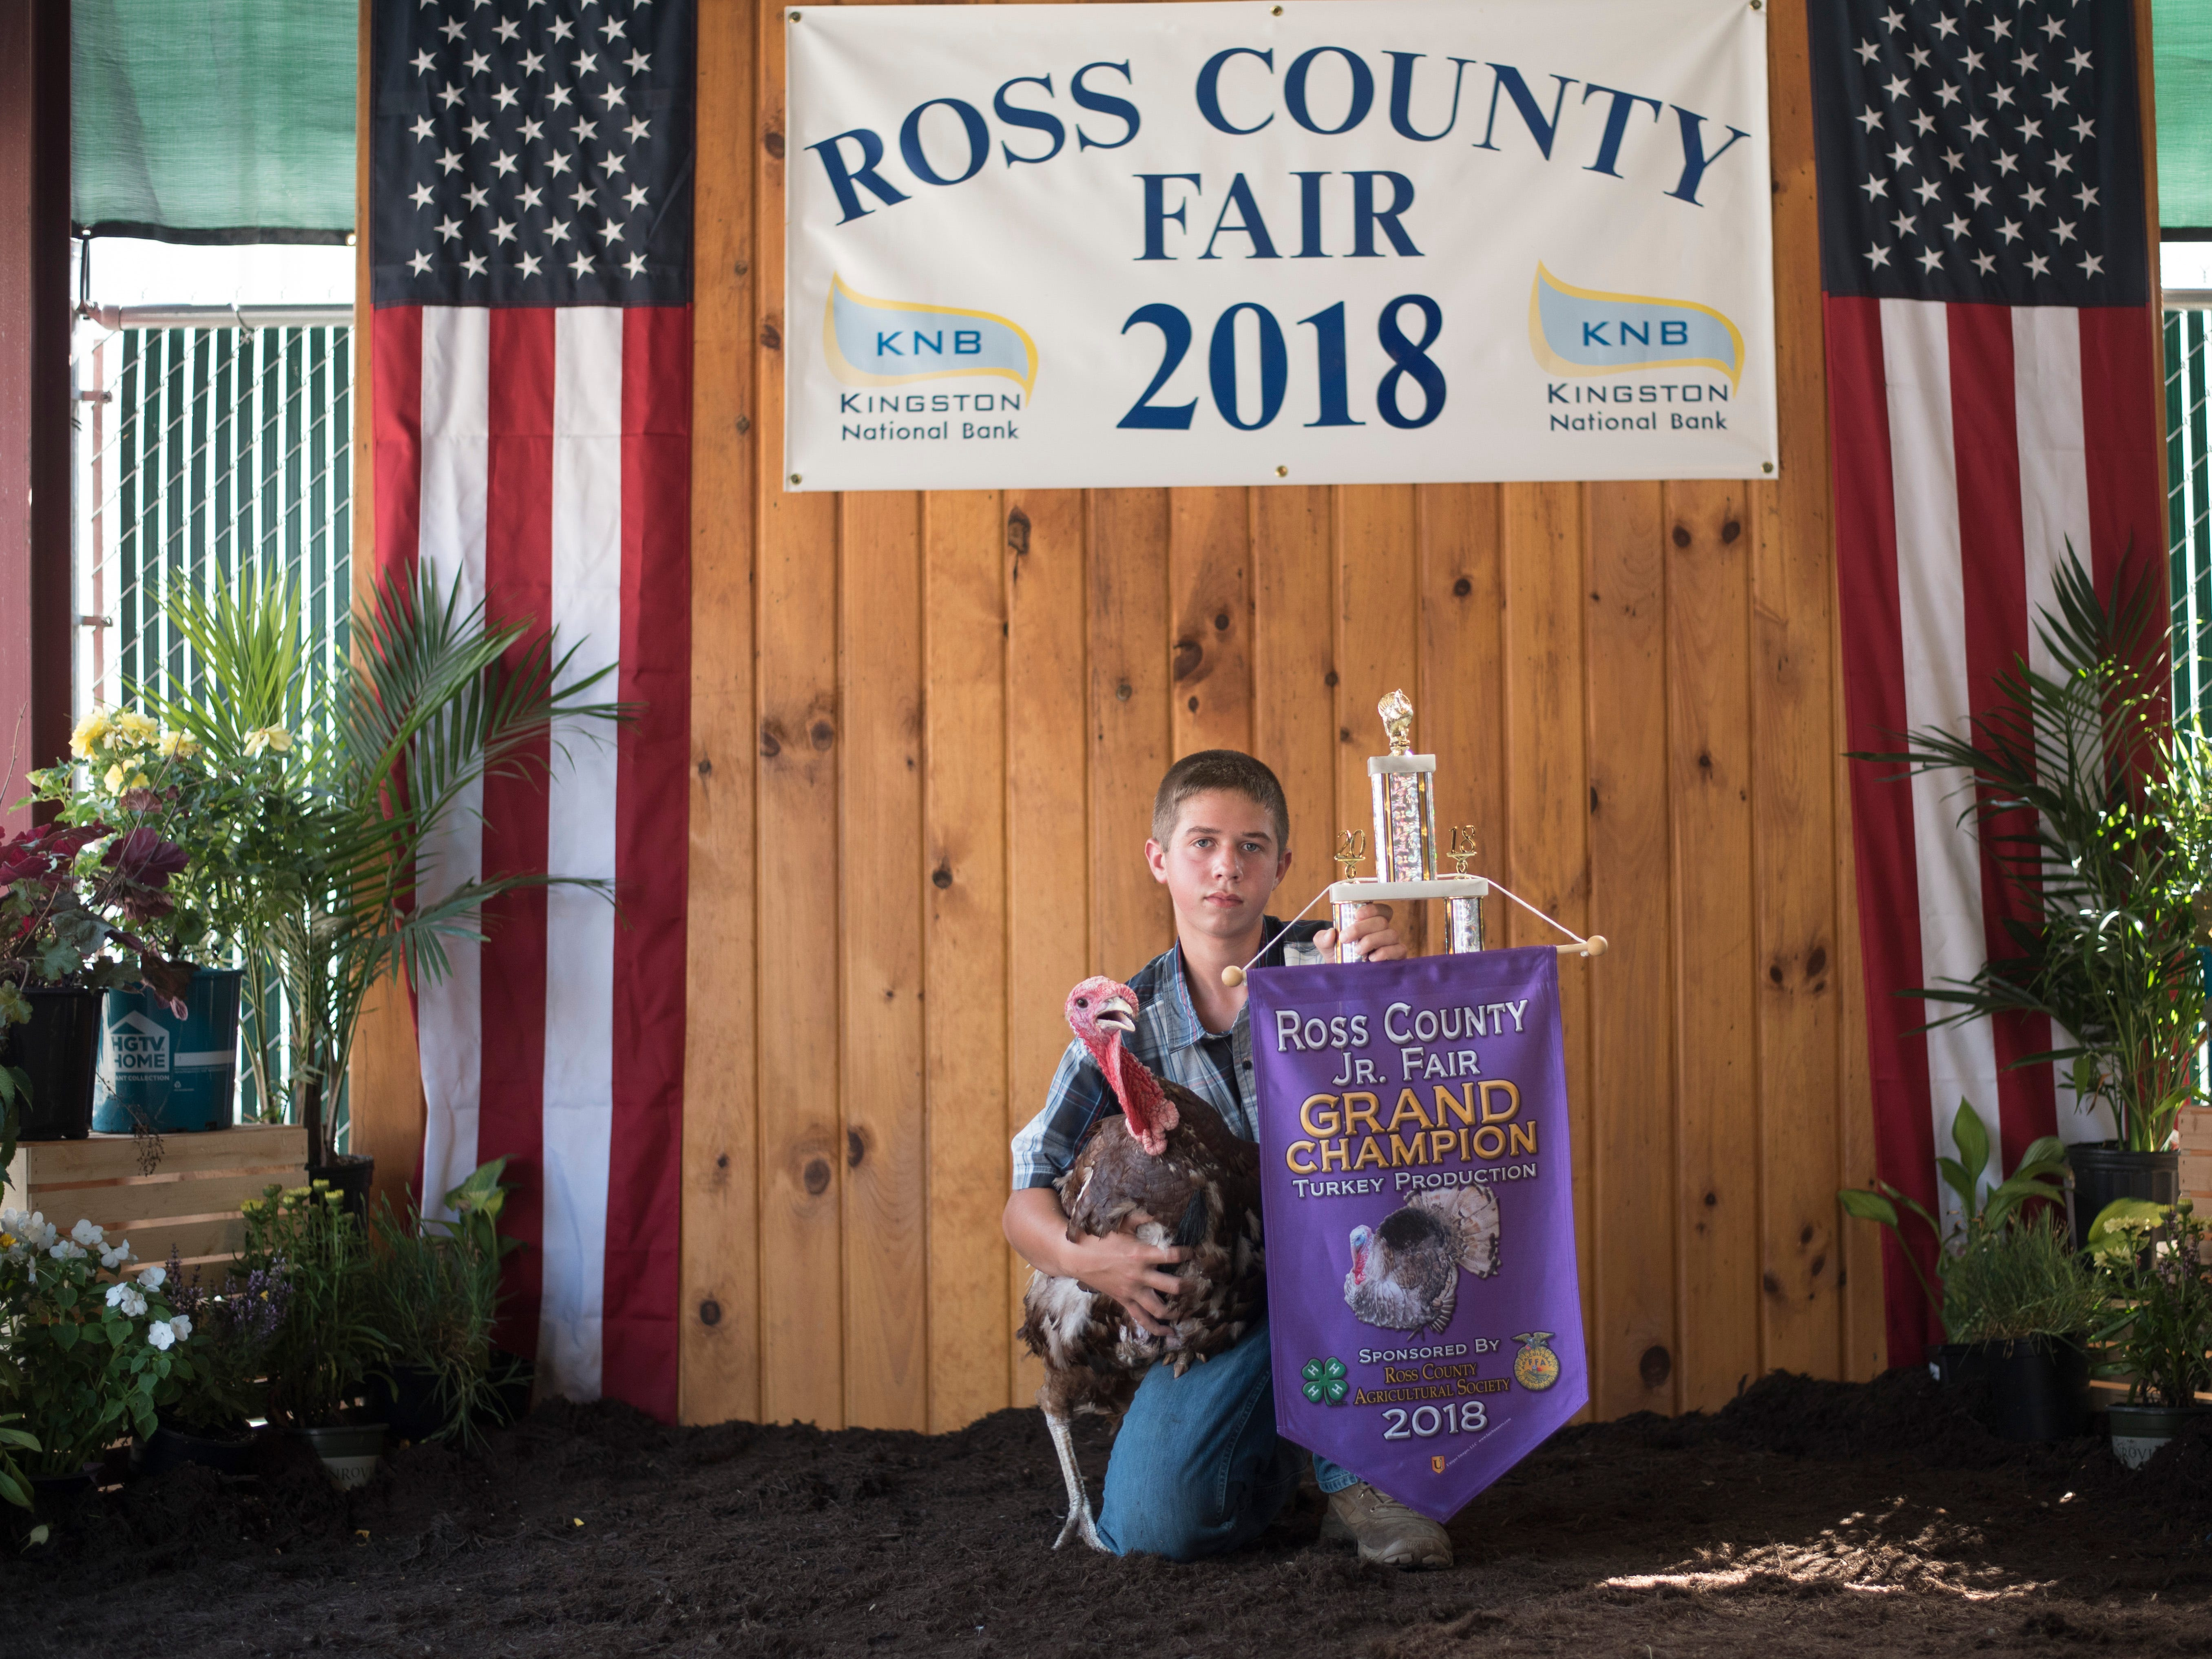 Highlights and portraits of the of the 2018 Jr. Fair Poultry Production and Fancy Poultry judging and showmanship contest. Mason Willis, 14, poses after winning Grand Champion with his turkey at the 2018 Ross County Fair on Monday, August 6.